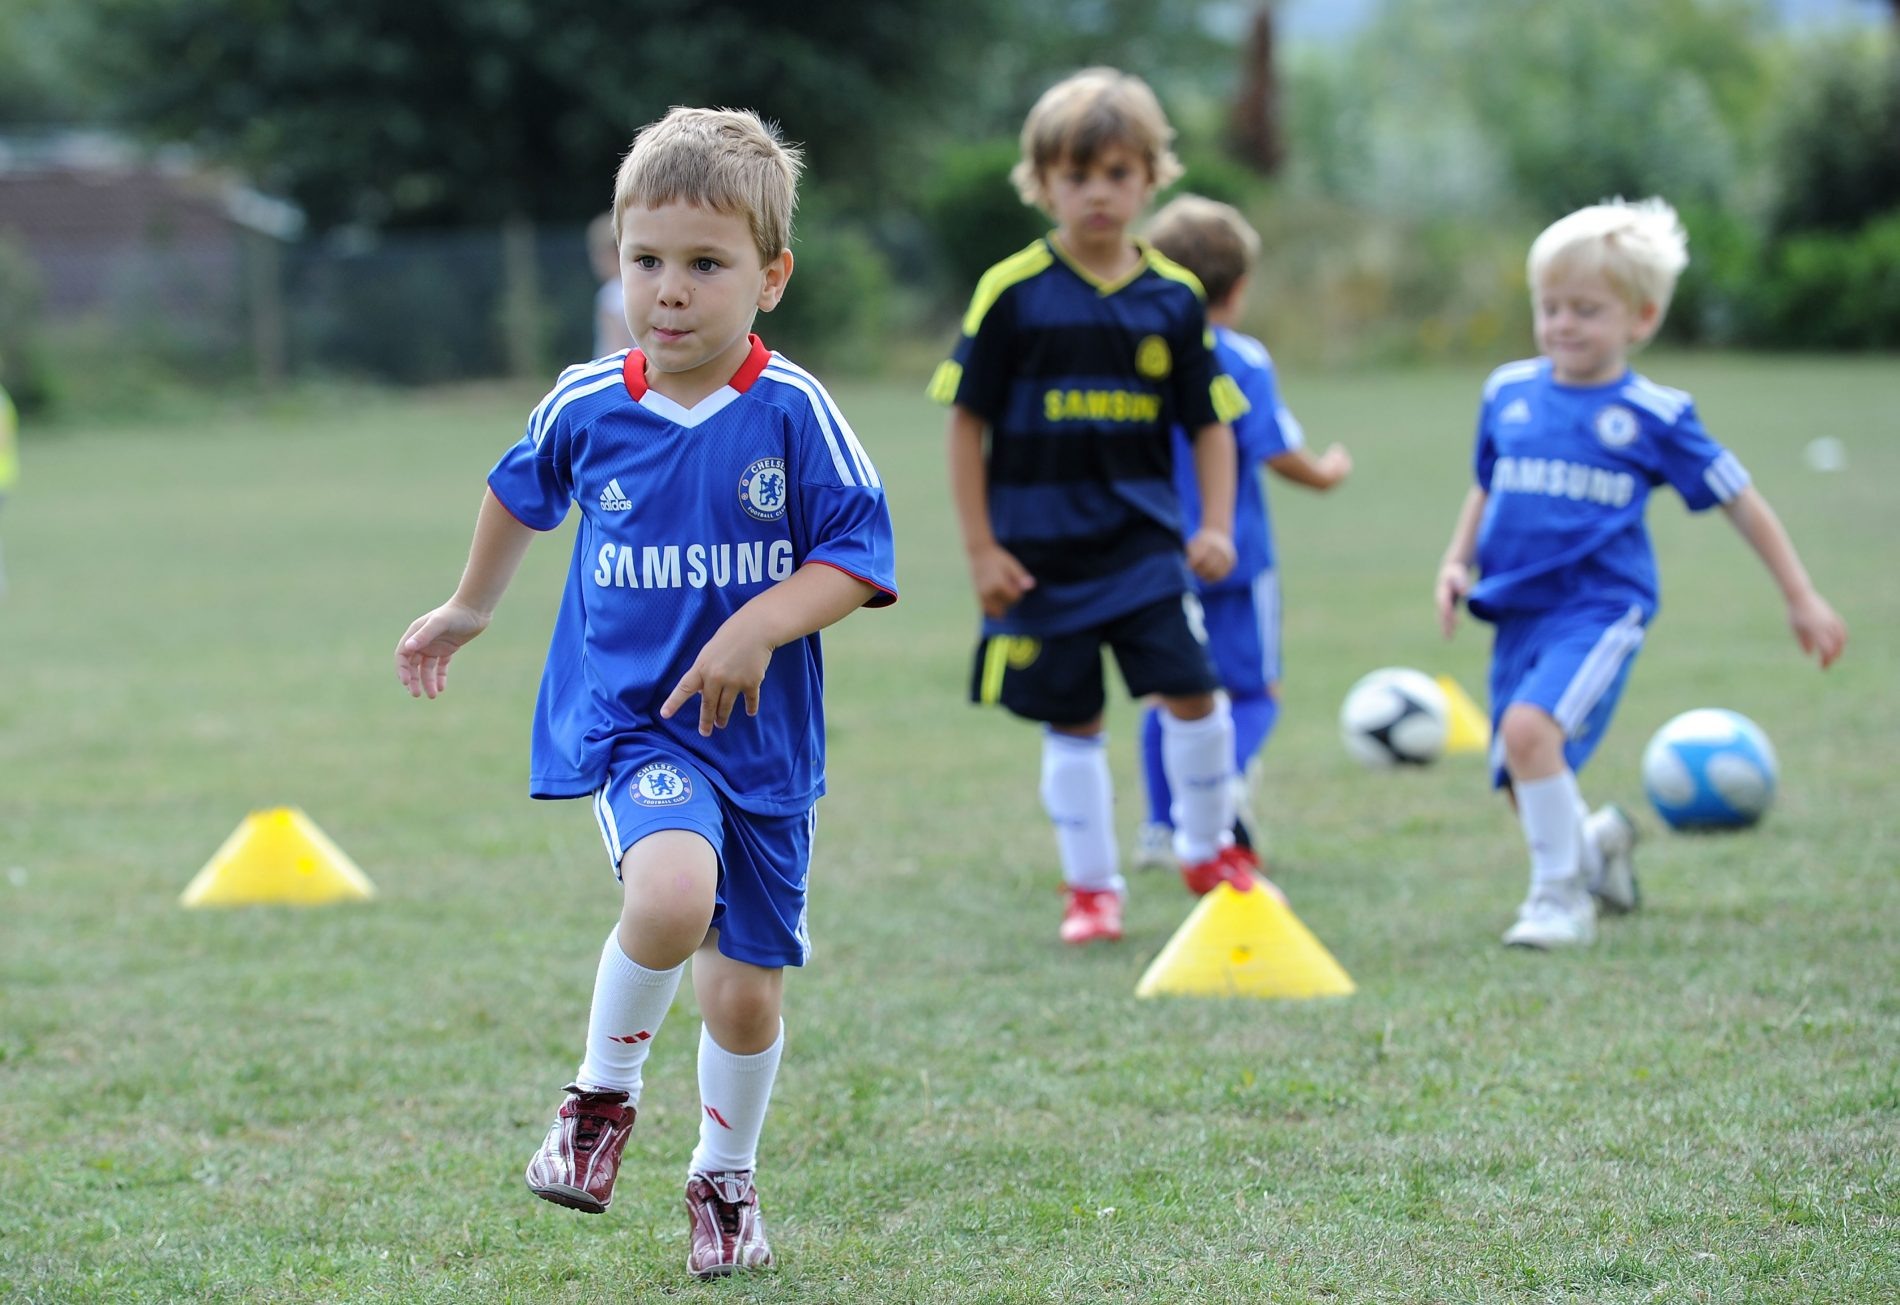 Get kids active at football schools this summer